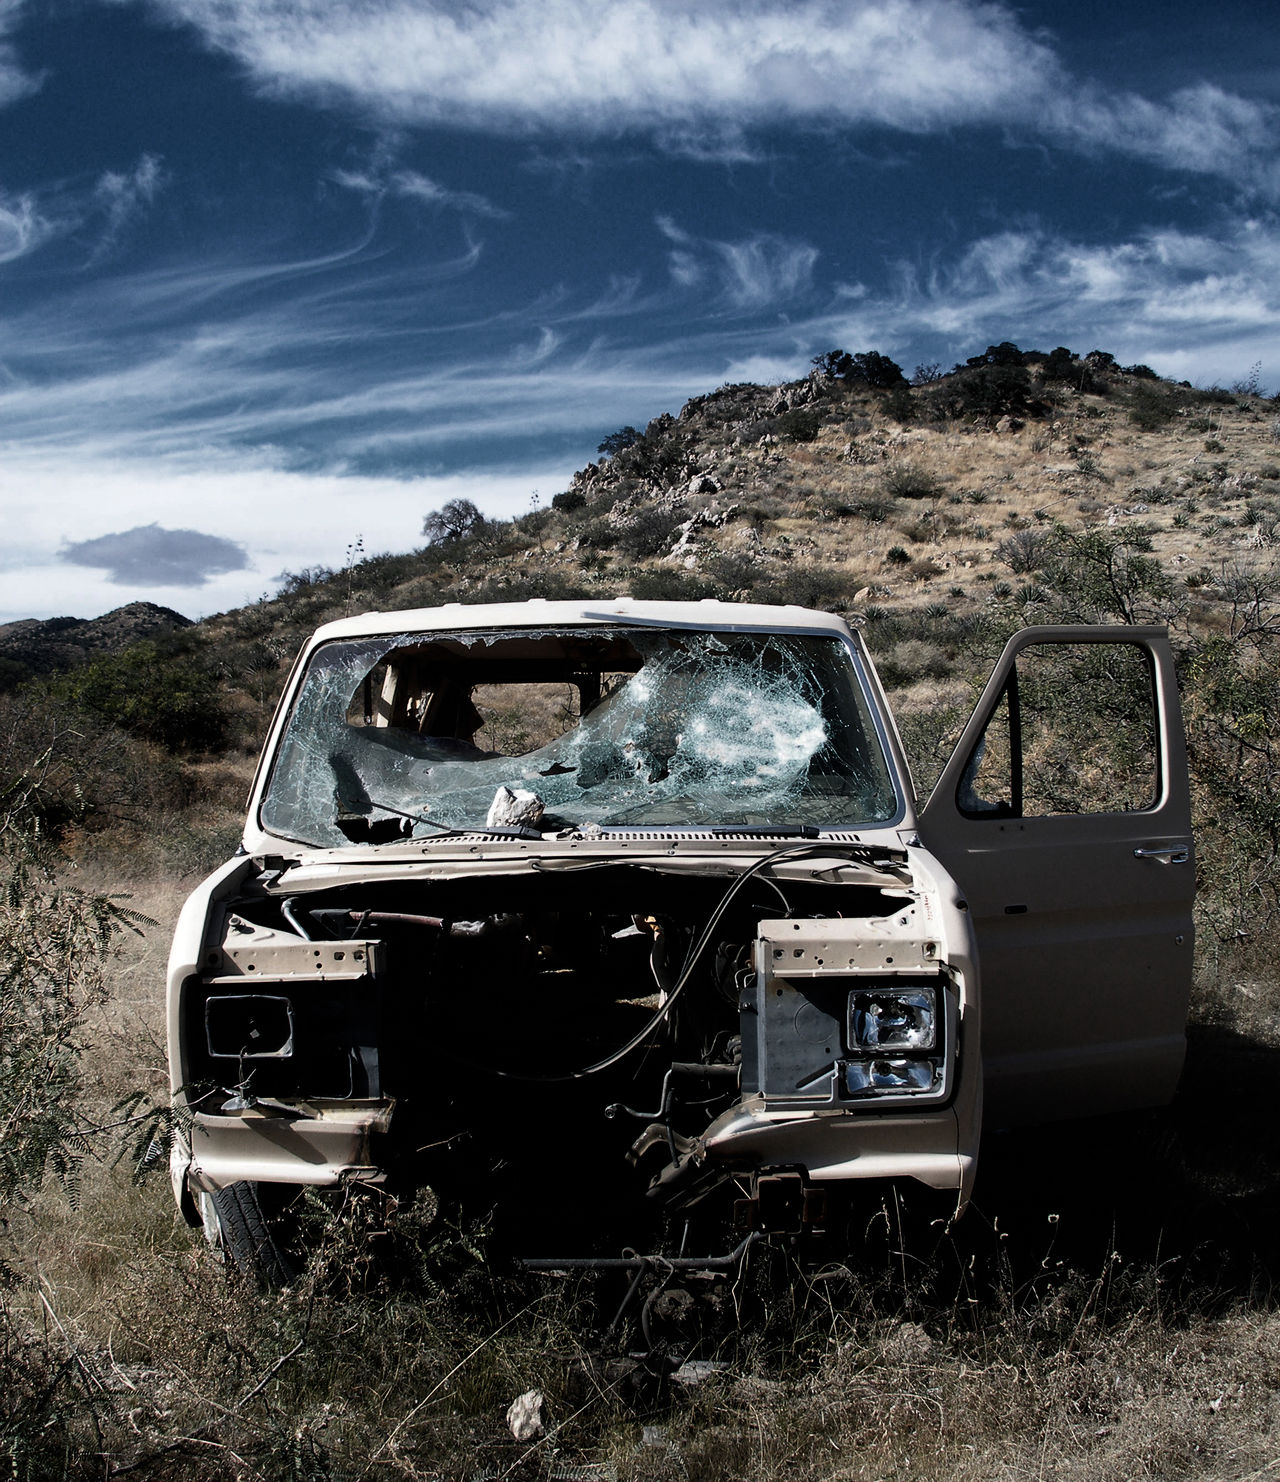 A car shot to death in the deep desert near Tucson, Arizona. Some people really hate parked cars. Beauty In Destruction Car Cloud - Sky Desert Landscape Destruction Can Be Beautiful Gun Shot Landscape Non-urban Scene Outdoors Remote Sky